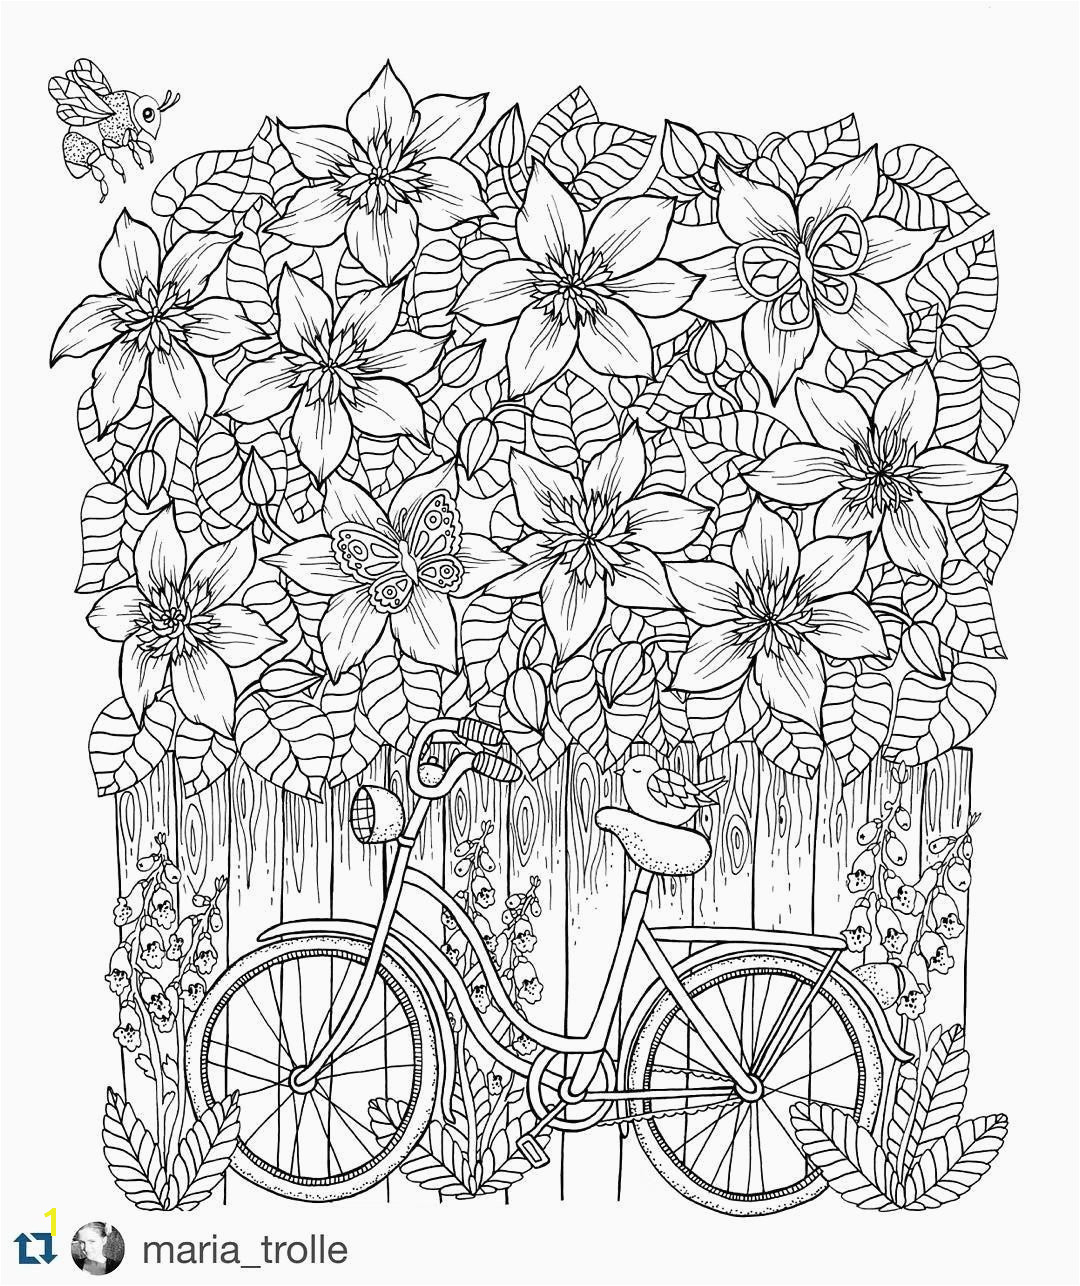 Free Grown Up Coloring Pages Unique Crayola Color by Number Free Coloring Pages Elegant Crayola Pages